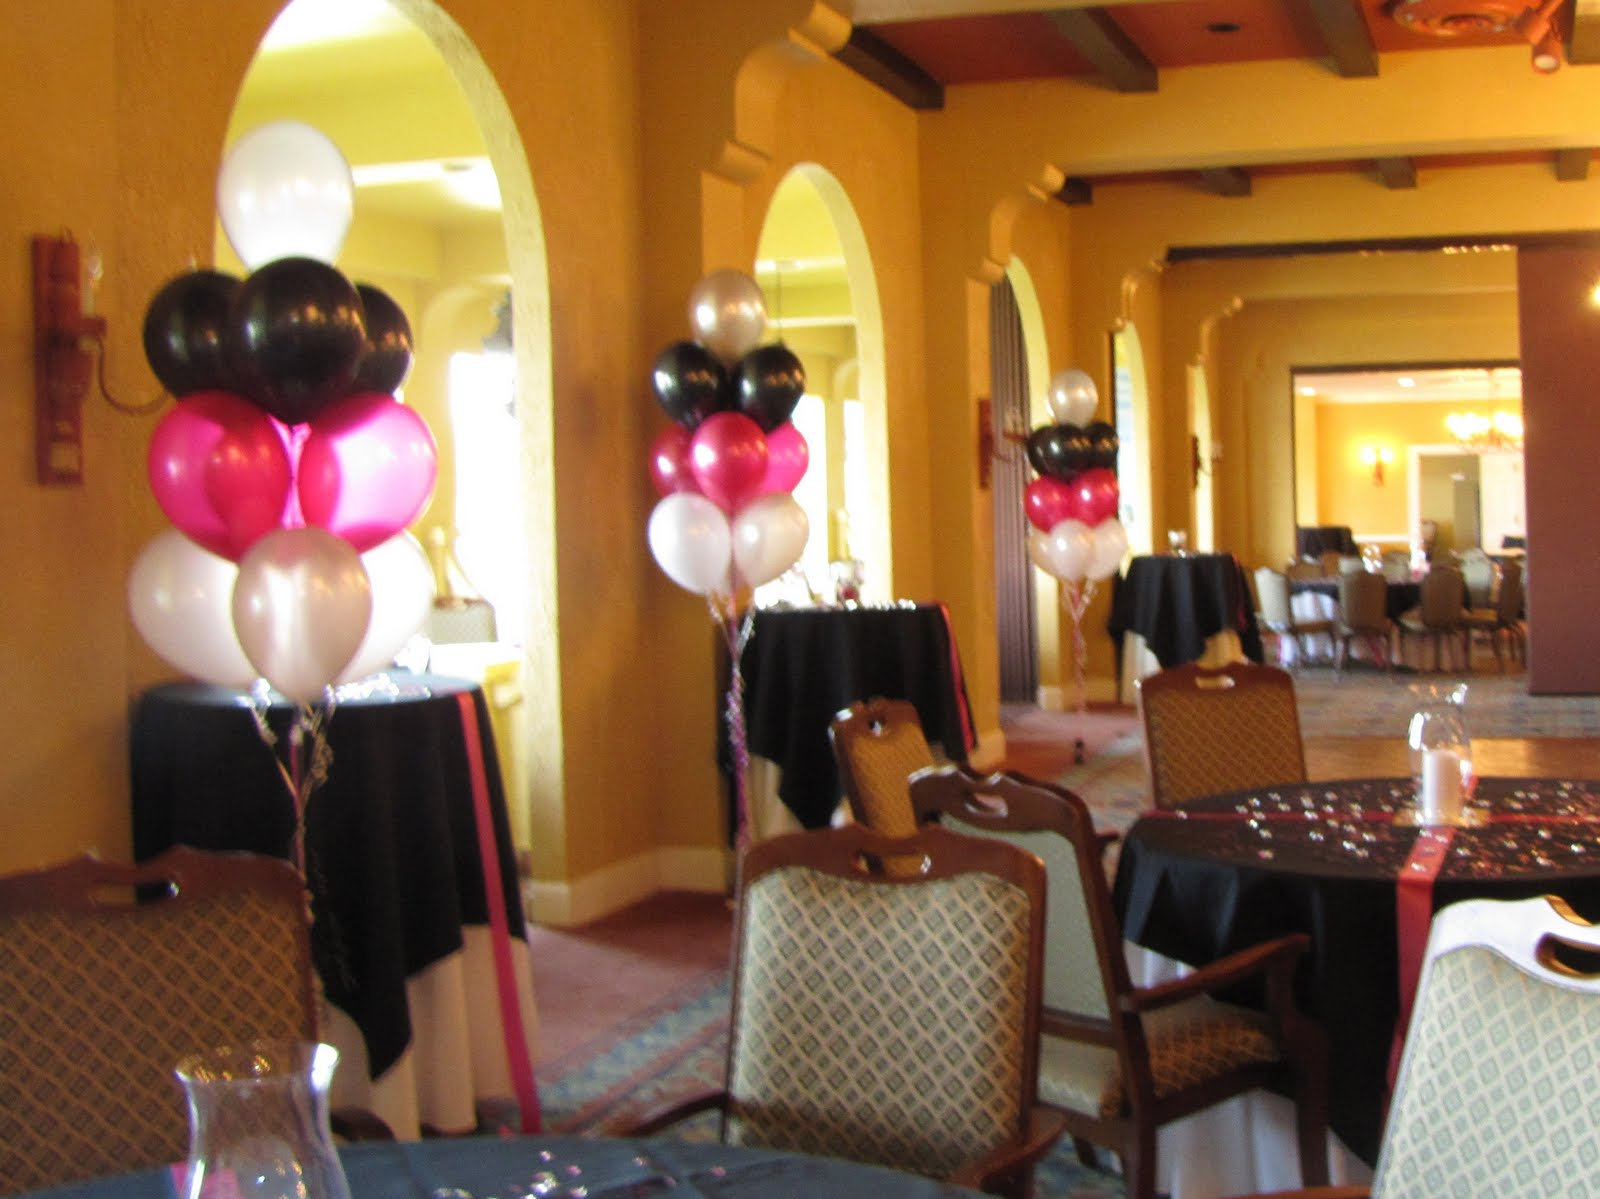 Party people event decorating company april 2011 for 70th birthday party decoration ideas